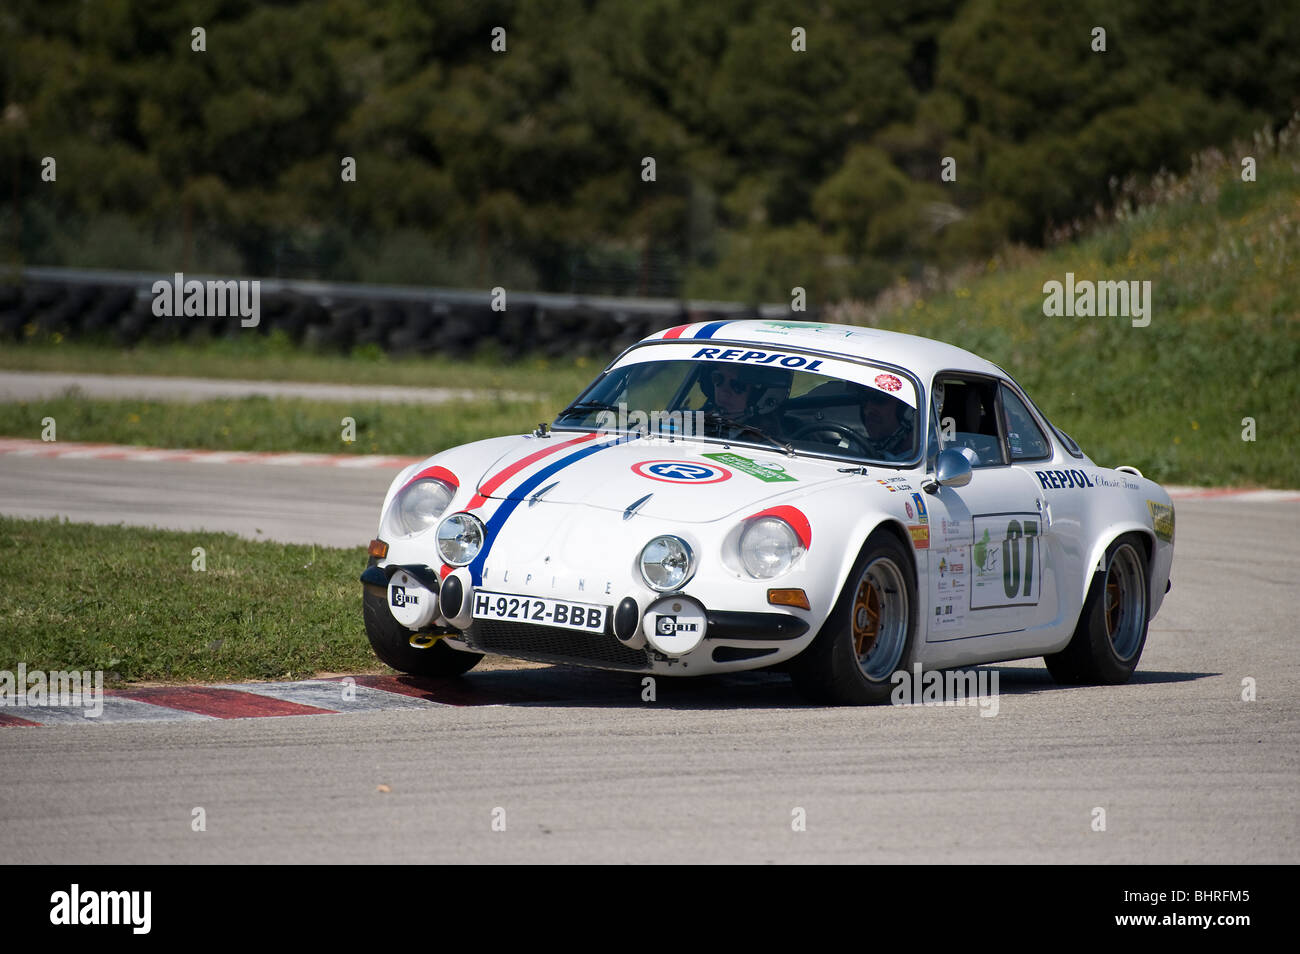 1969 renault alpine a110 berlinette racing in a classic car rally in stock photo royalty free. Black Bedroom Furniture Sets. Home Design Ideas